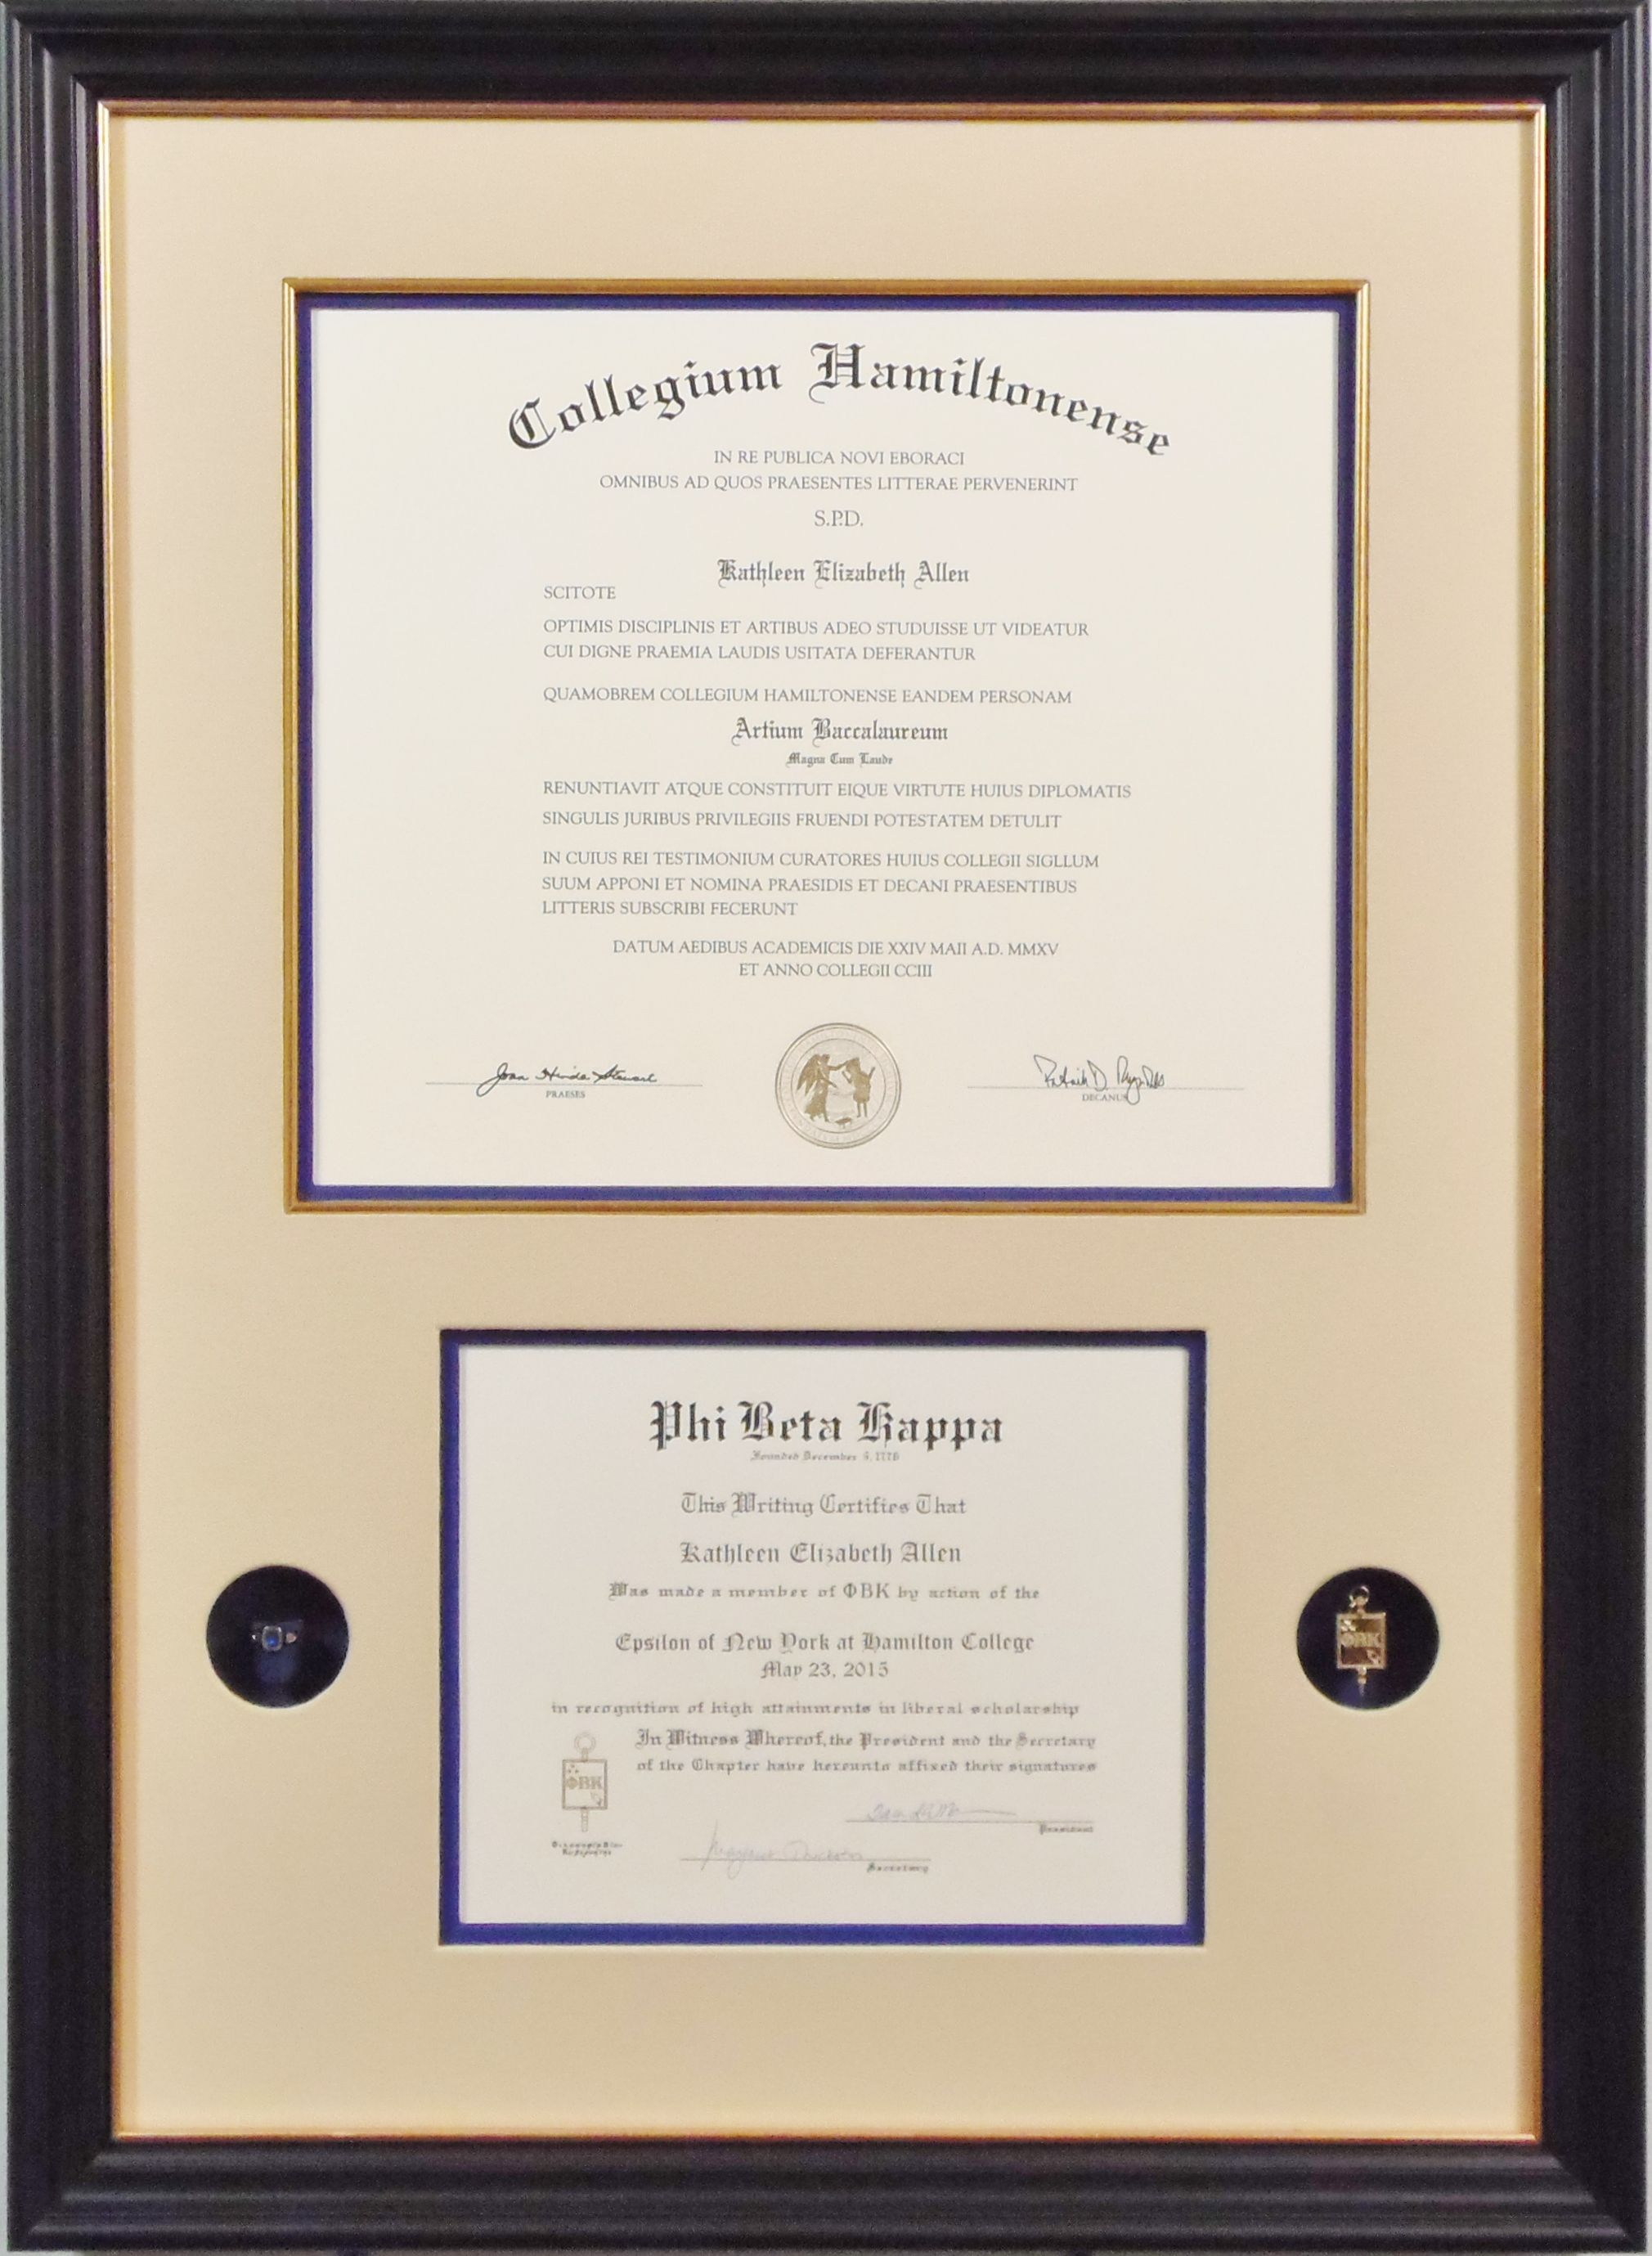 Custom Framed Diploma And Certificate Of Honors With Accompanying